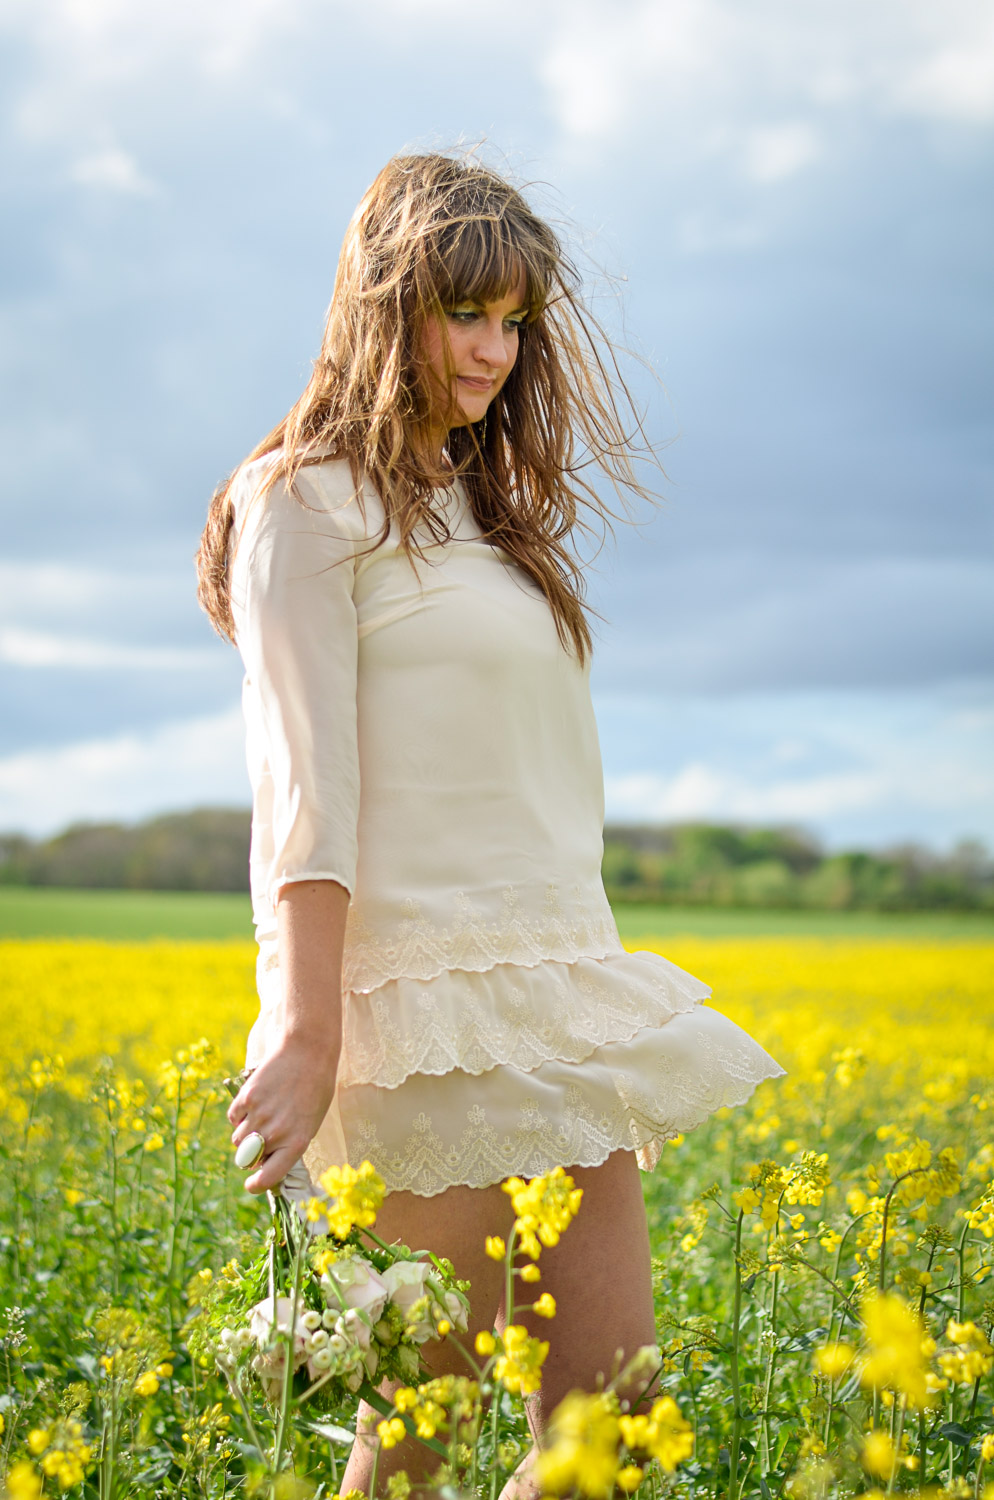 pontefract photo shoot of a girl in a field on yellow flowers